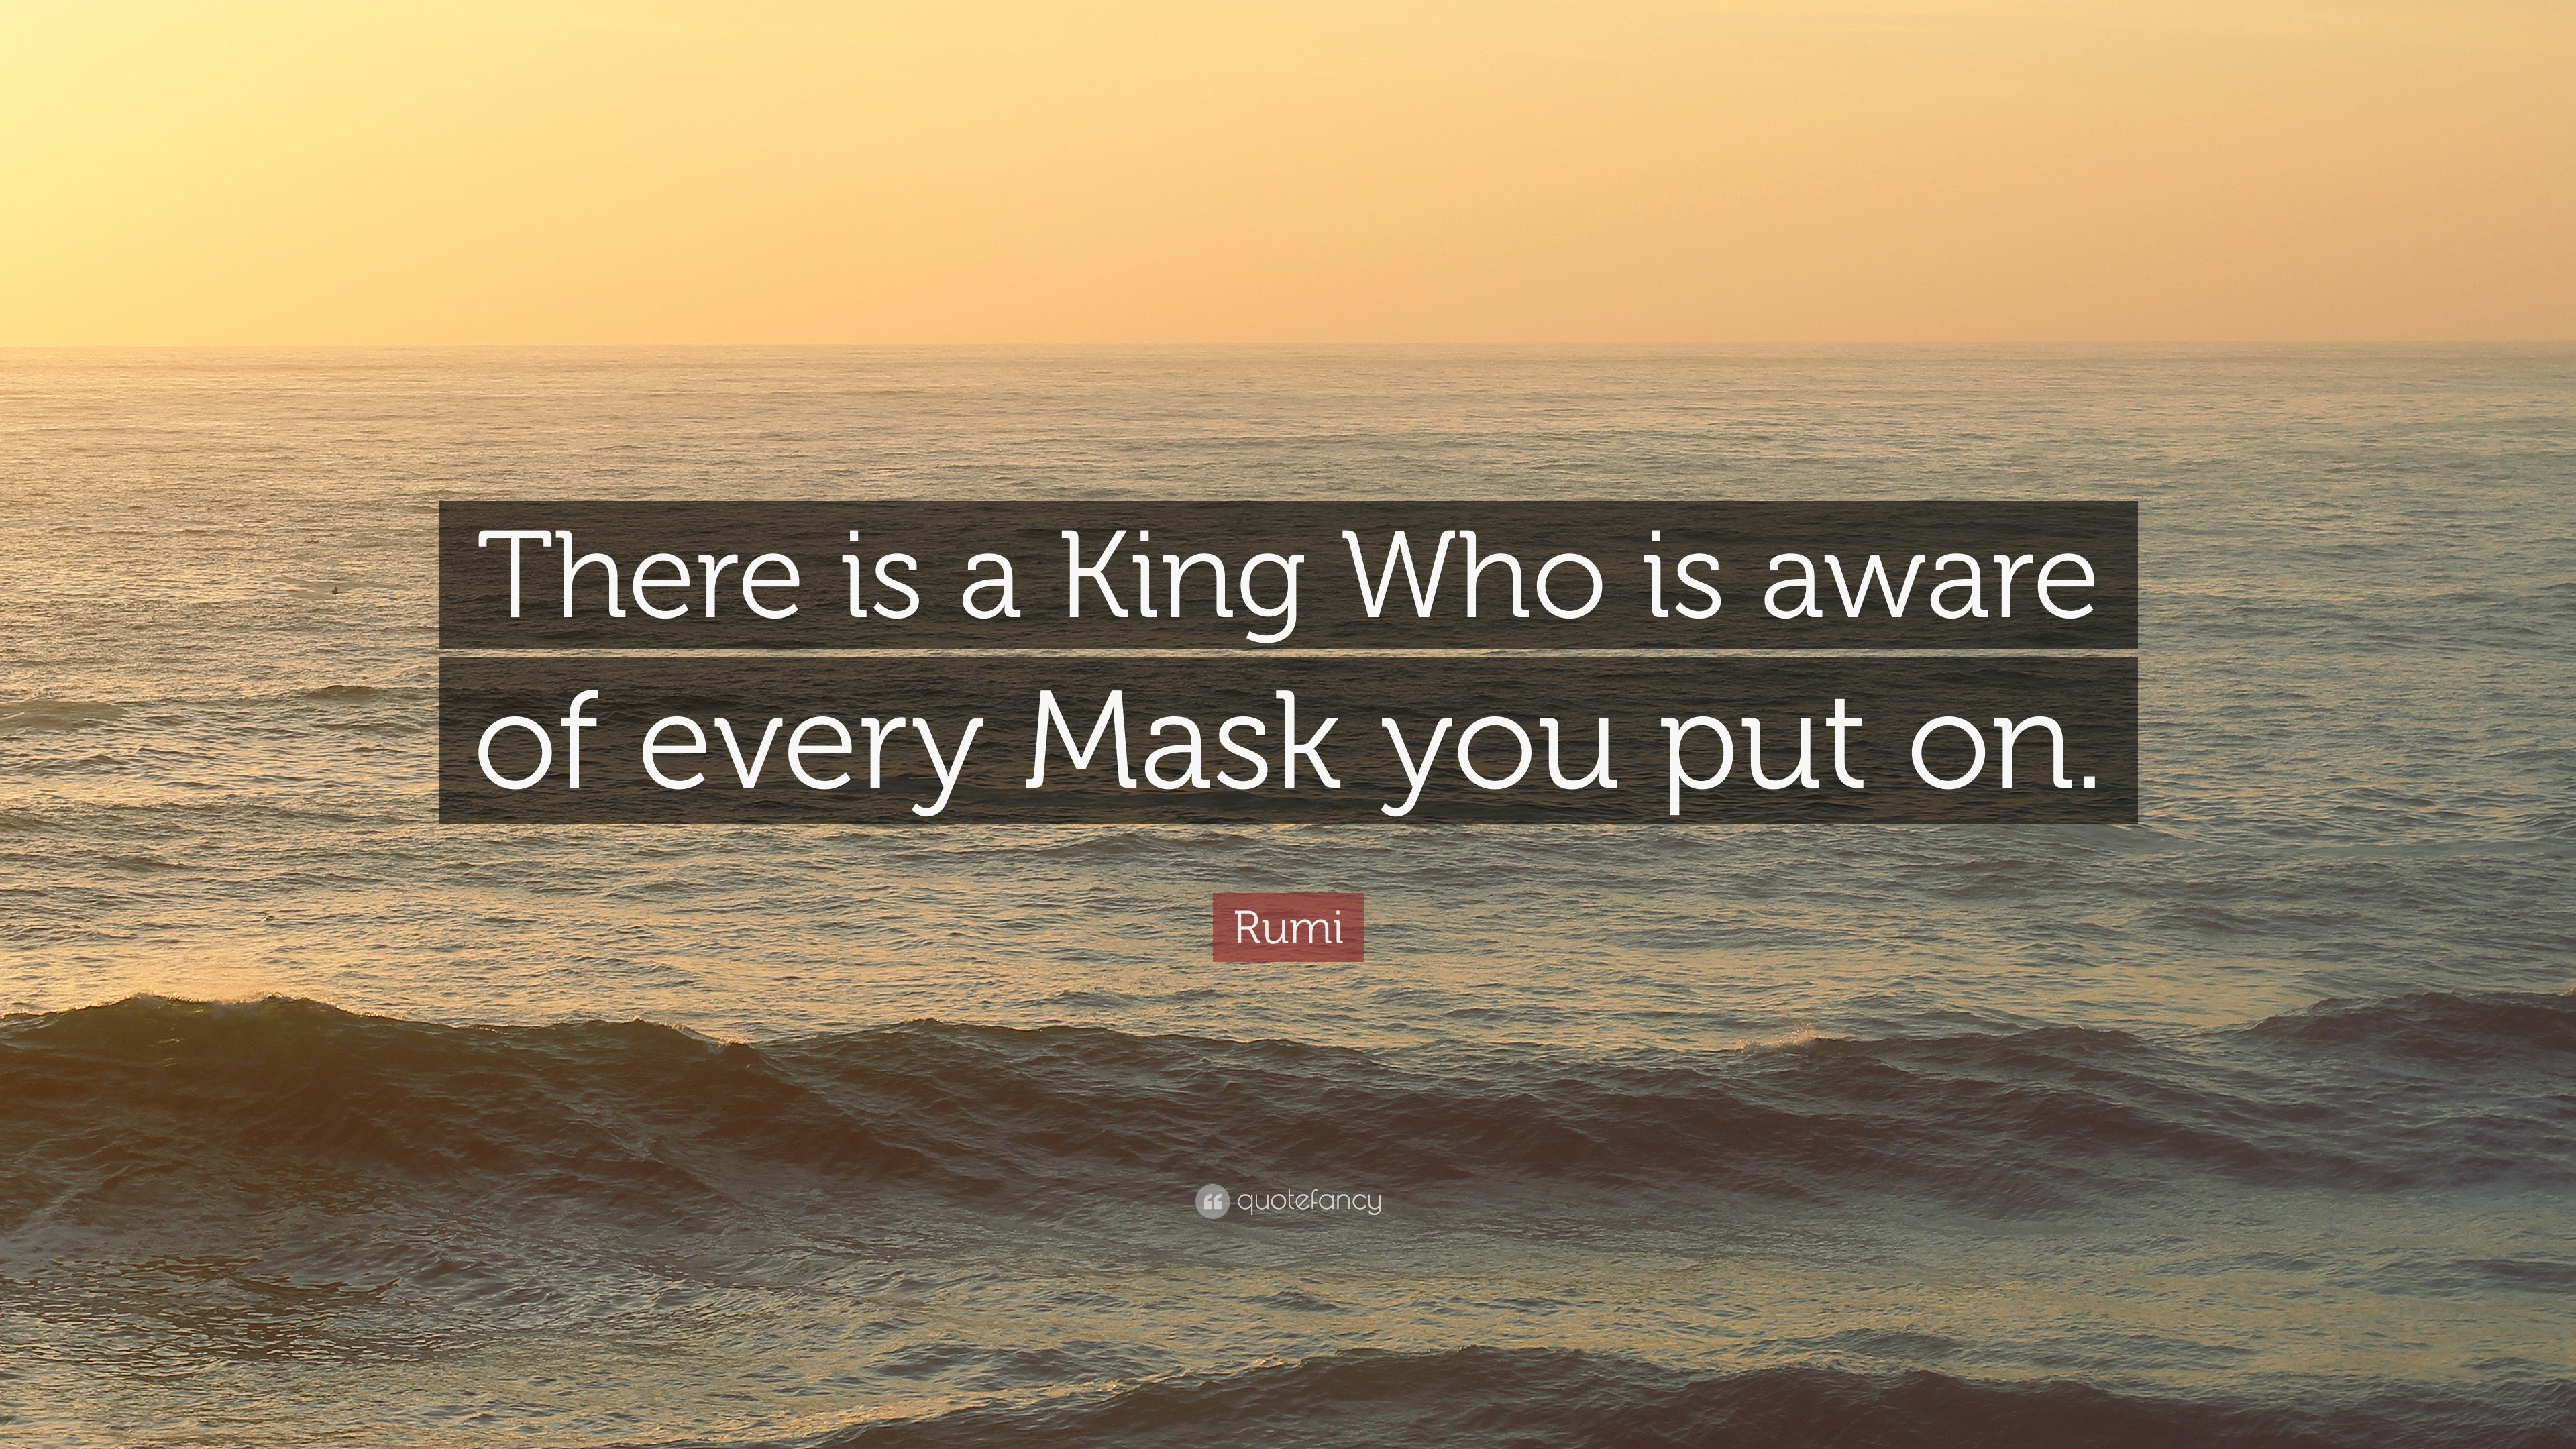 Rumi Quote There Is A King Who Is Aware Of Every Mask You Put On 12 Wallpapers Quotefancy